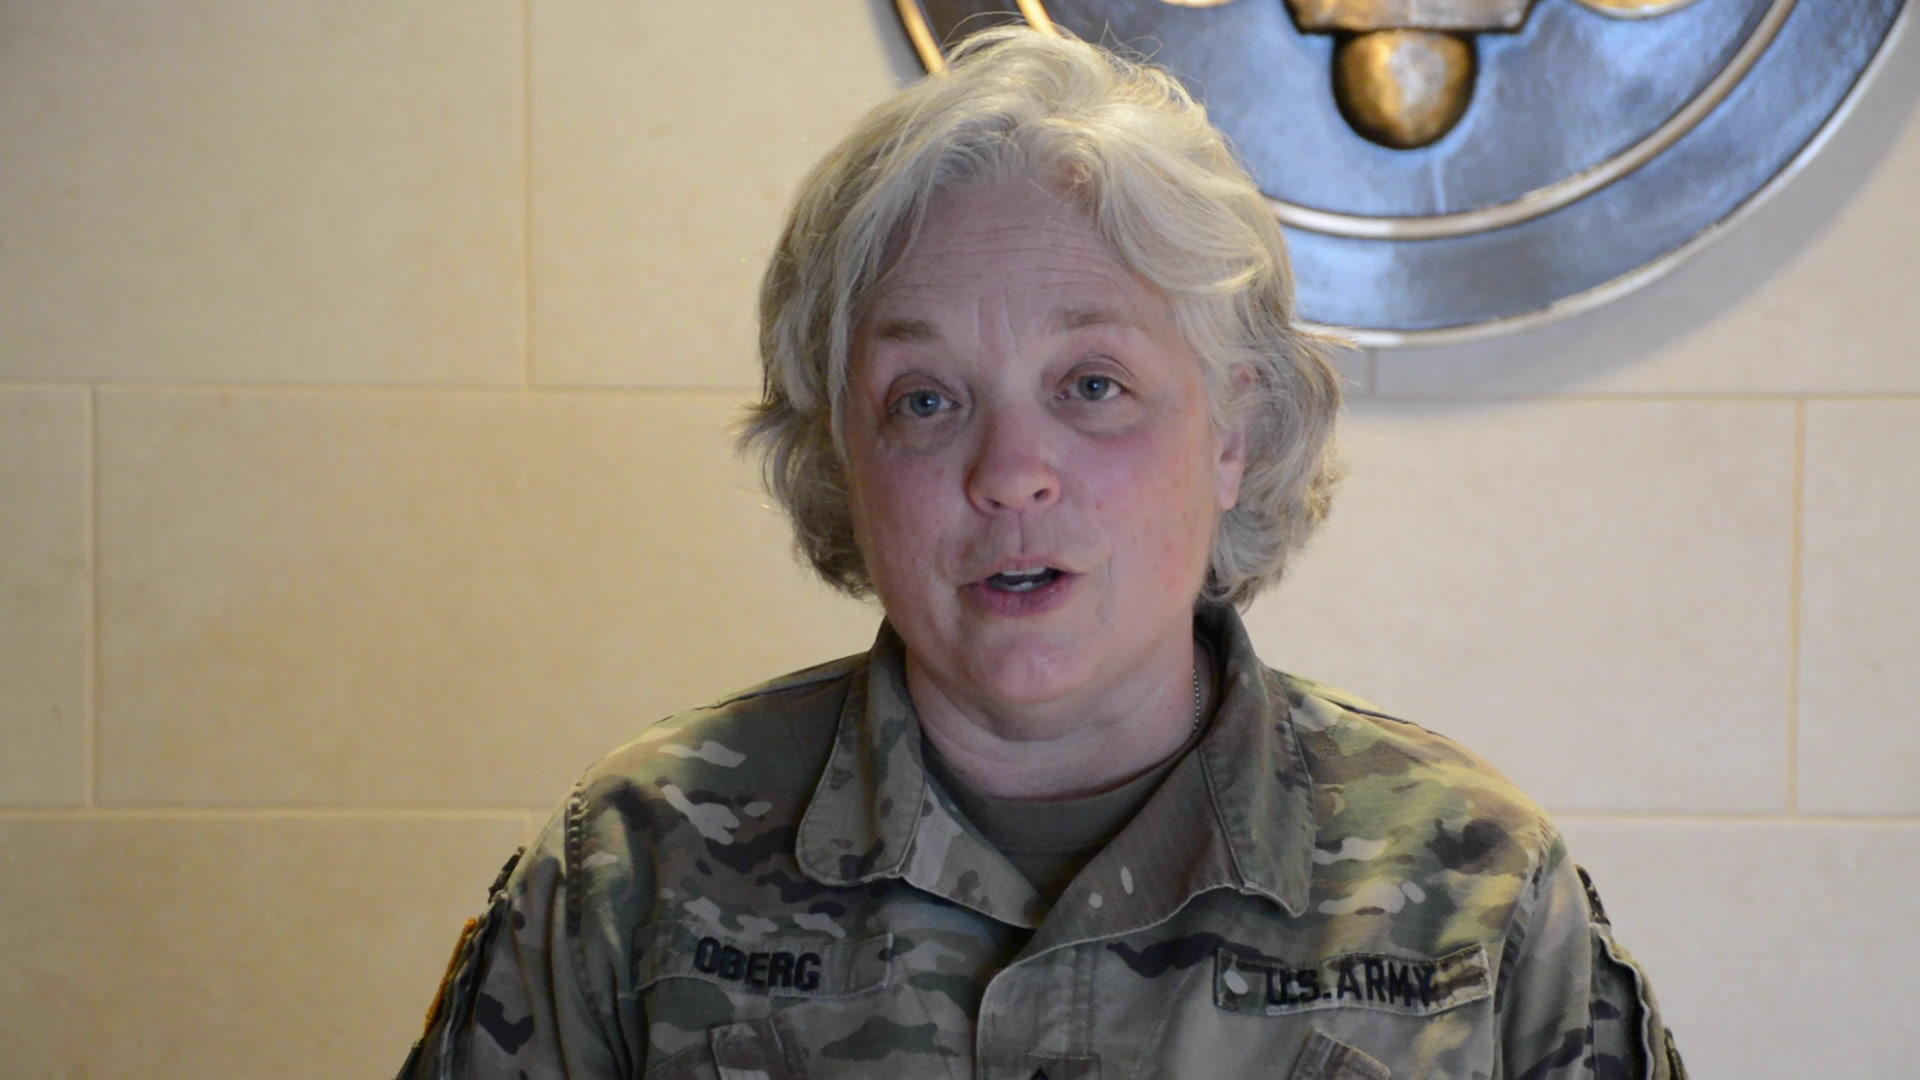 MSG Constance Oberg, a food service operations noncommissioned officer assigned to the 561st Regional Support Group (RSG), tells why she serves in the U.S Army Reserve at the Omaha reserve center, Elkhorn, NE March 28, 2021. The United States Army Reserve Command (USARC) is highlighting Soldiers' stories and how serving in the Army reserve affects Soldiers civilian careers.